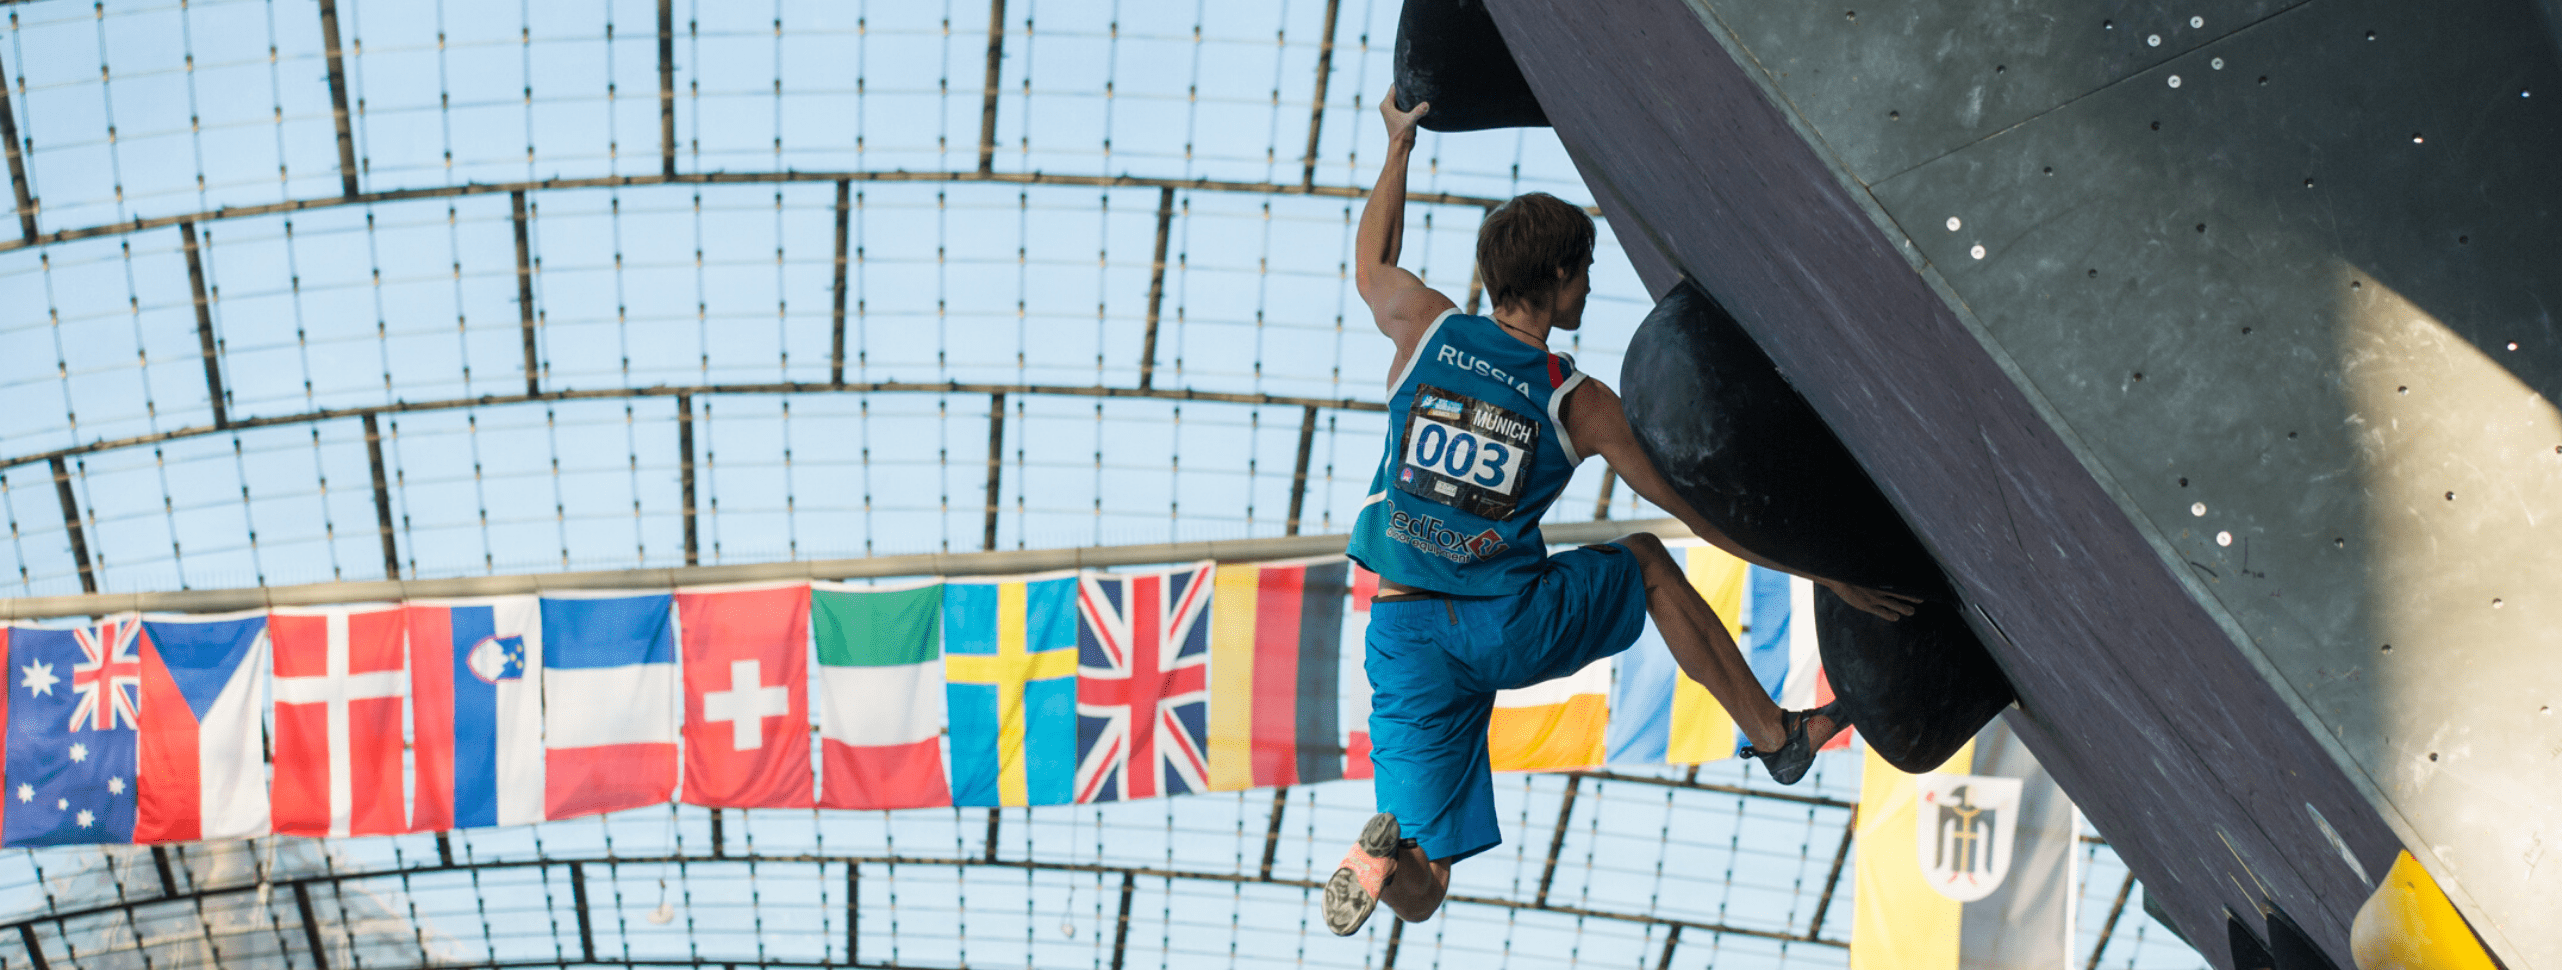 IFSC TO HOST MUNICH 2016 WATCH PARTY